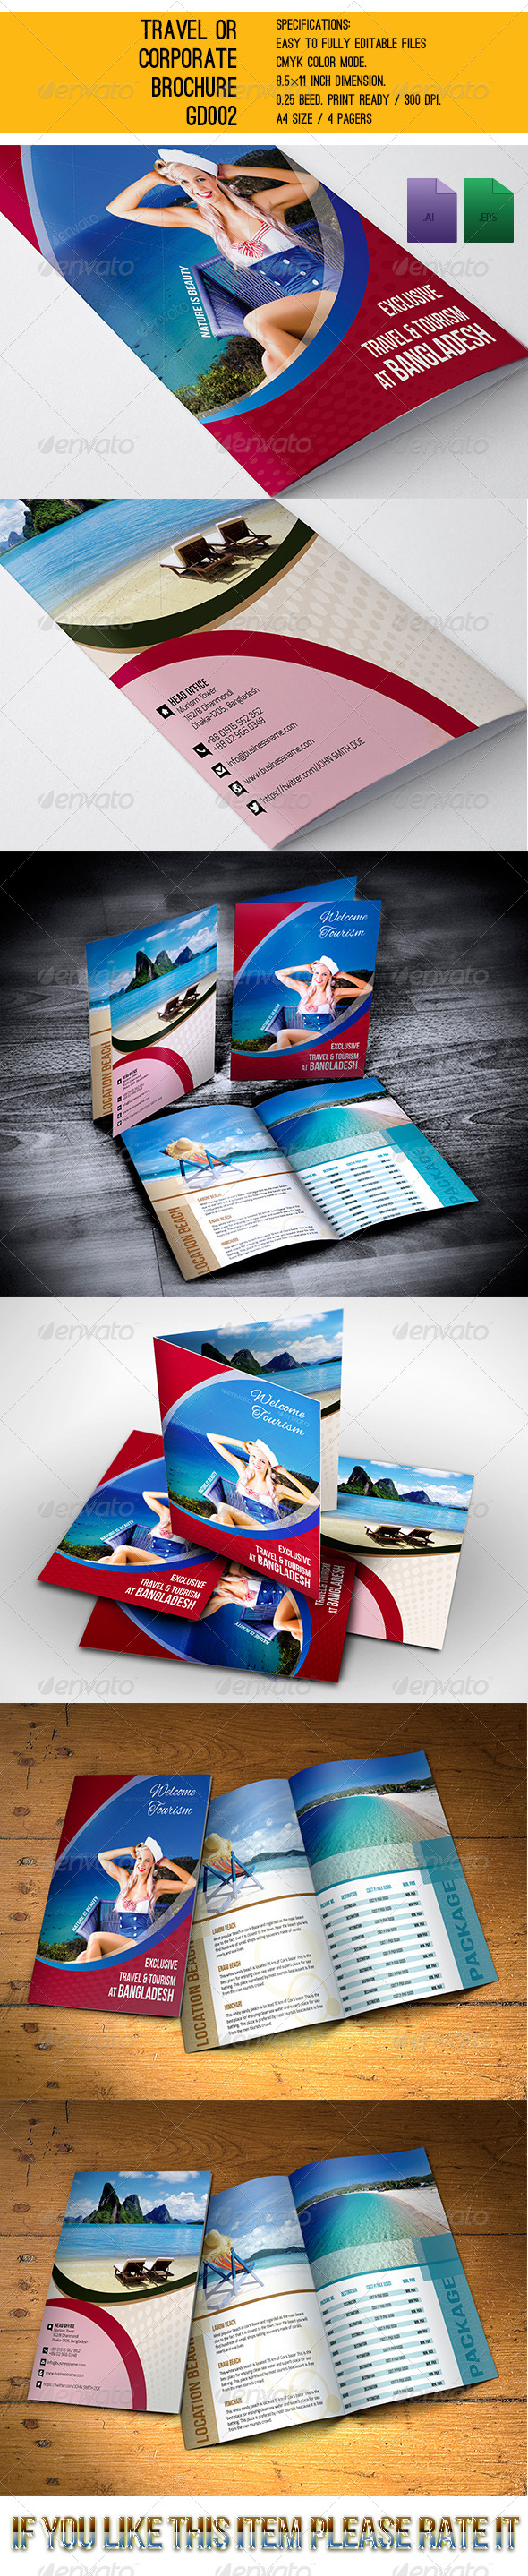 GraphicRiver Travel or Corporate Brochures GD003 6066748